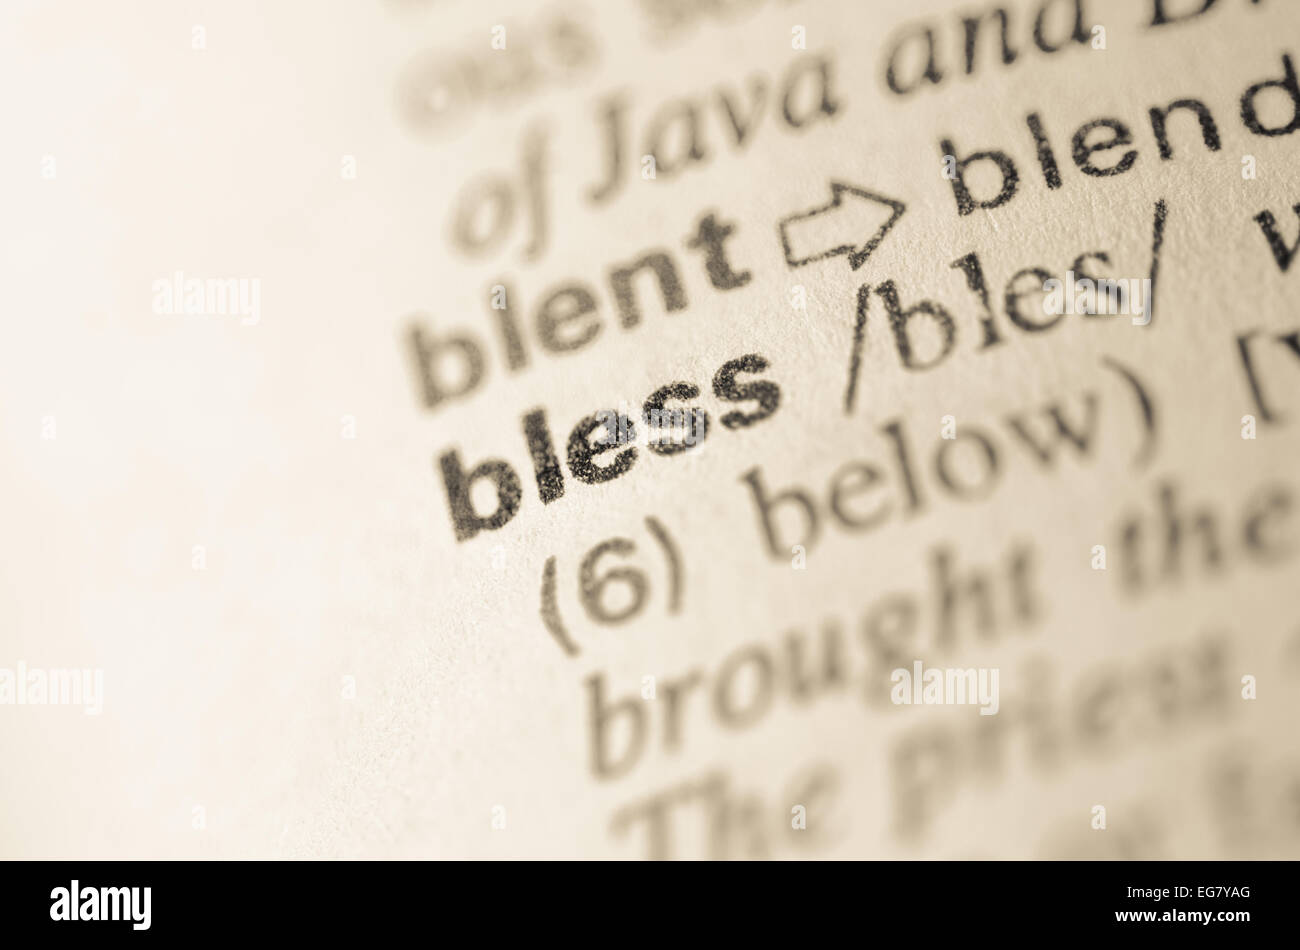 definition of word bless in dictionary stock photo: 78851096 - alamy